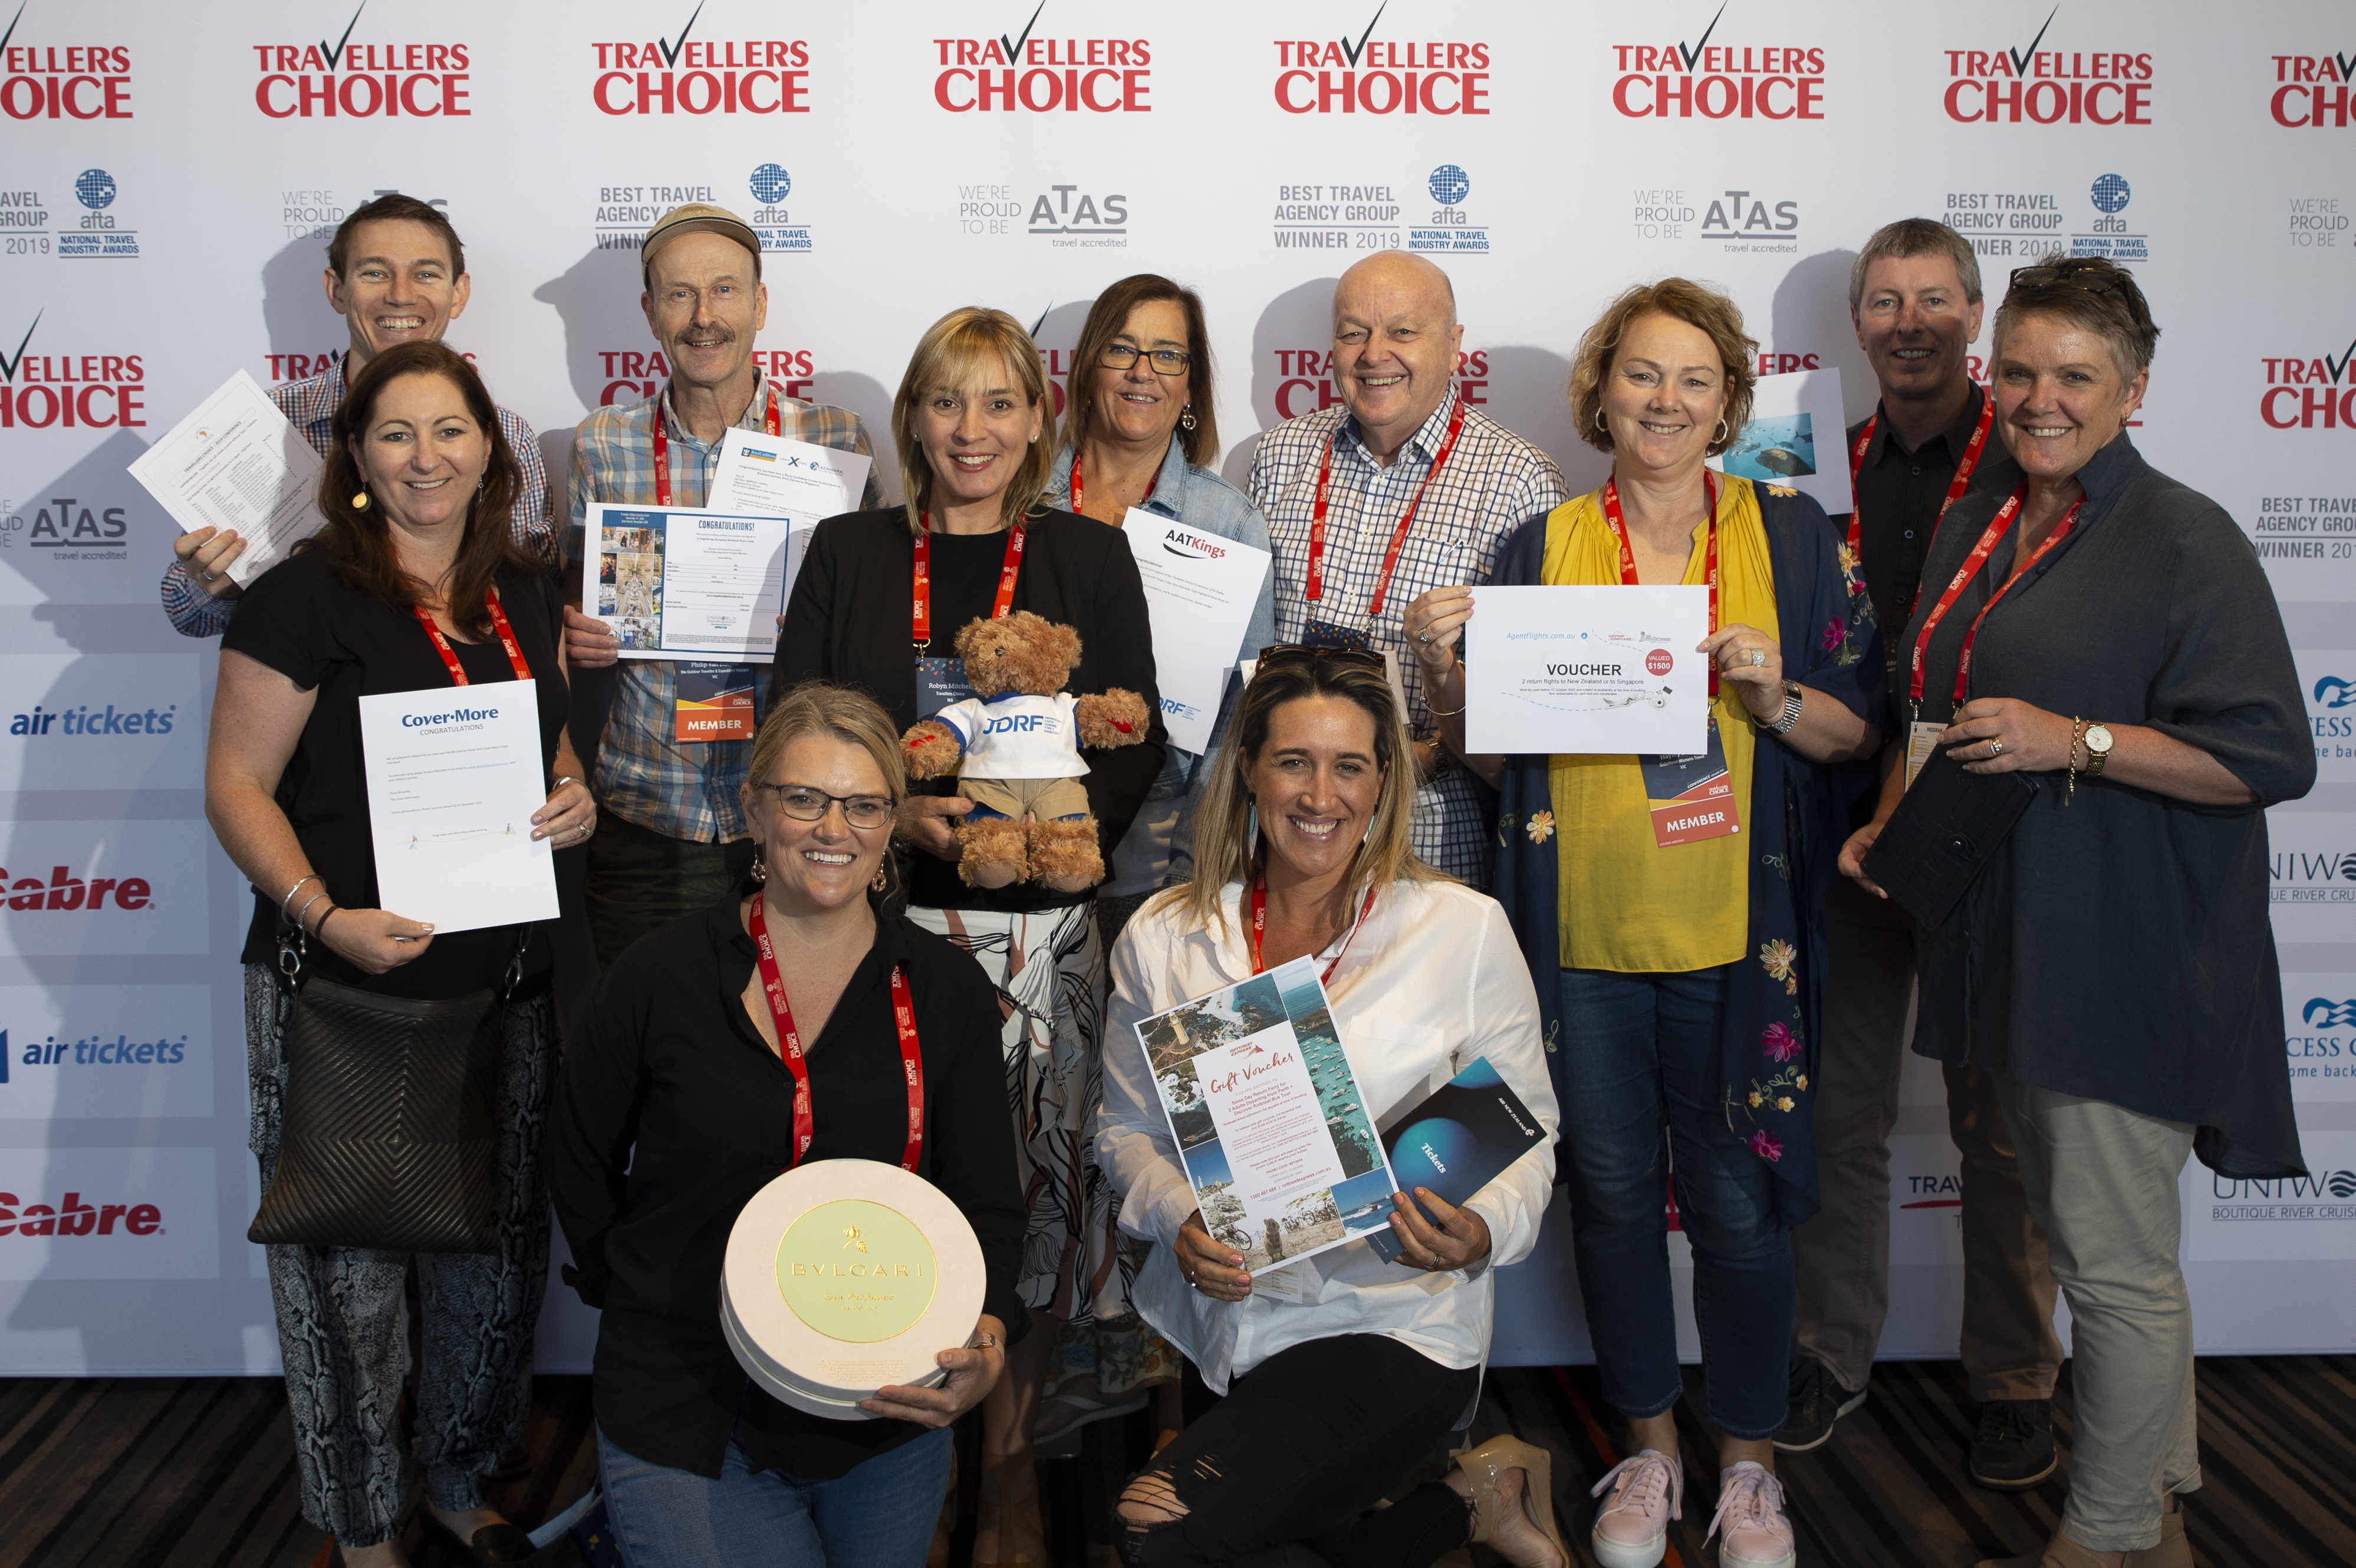 Travellers Choice's generous members and winners of the JRDF raffle at the 2019 Travellers Choice Conference pictured with General Manager Marketing Robyn Mitchell.